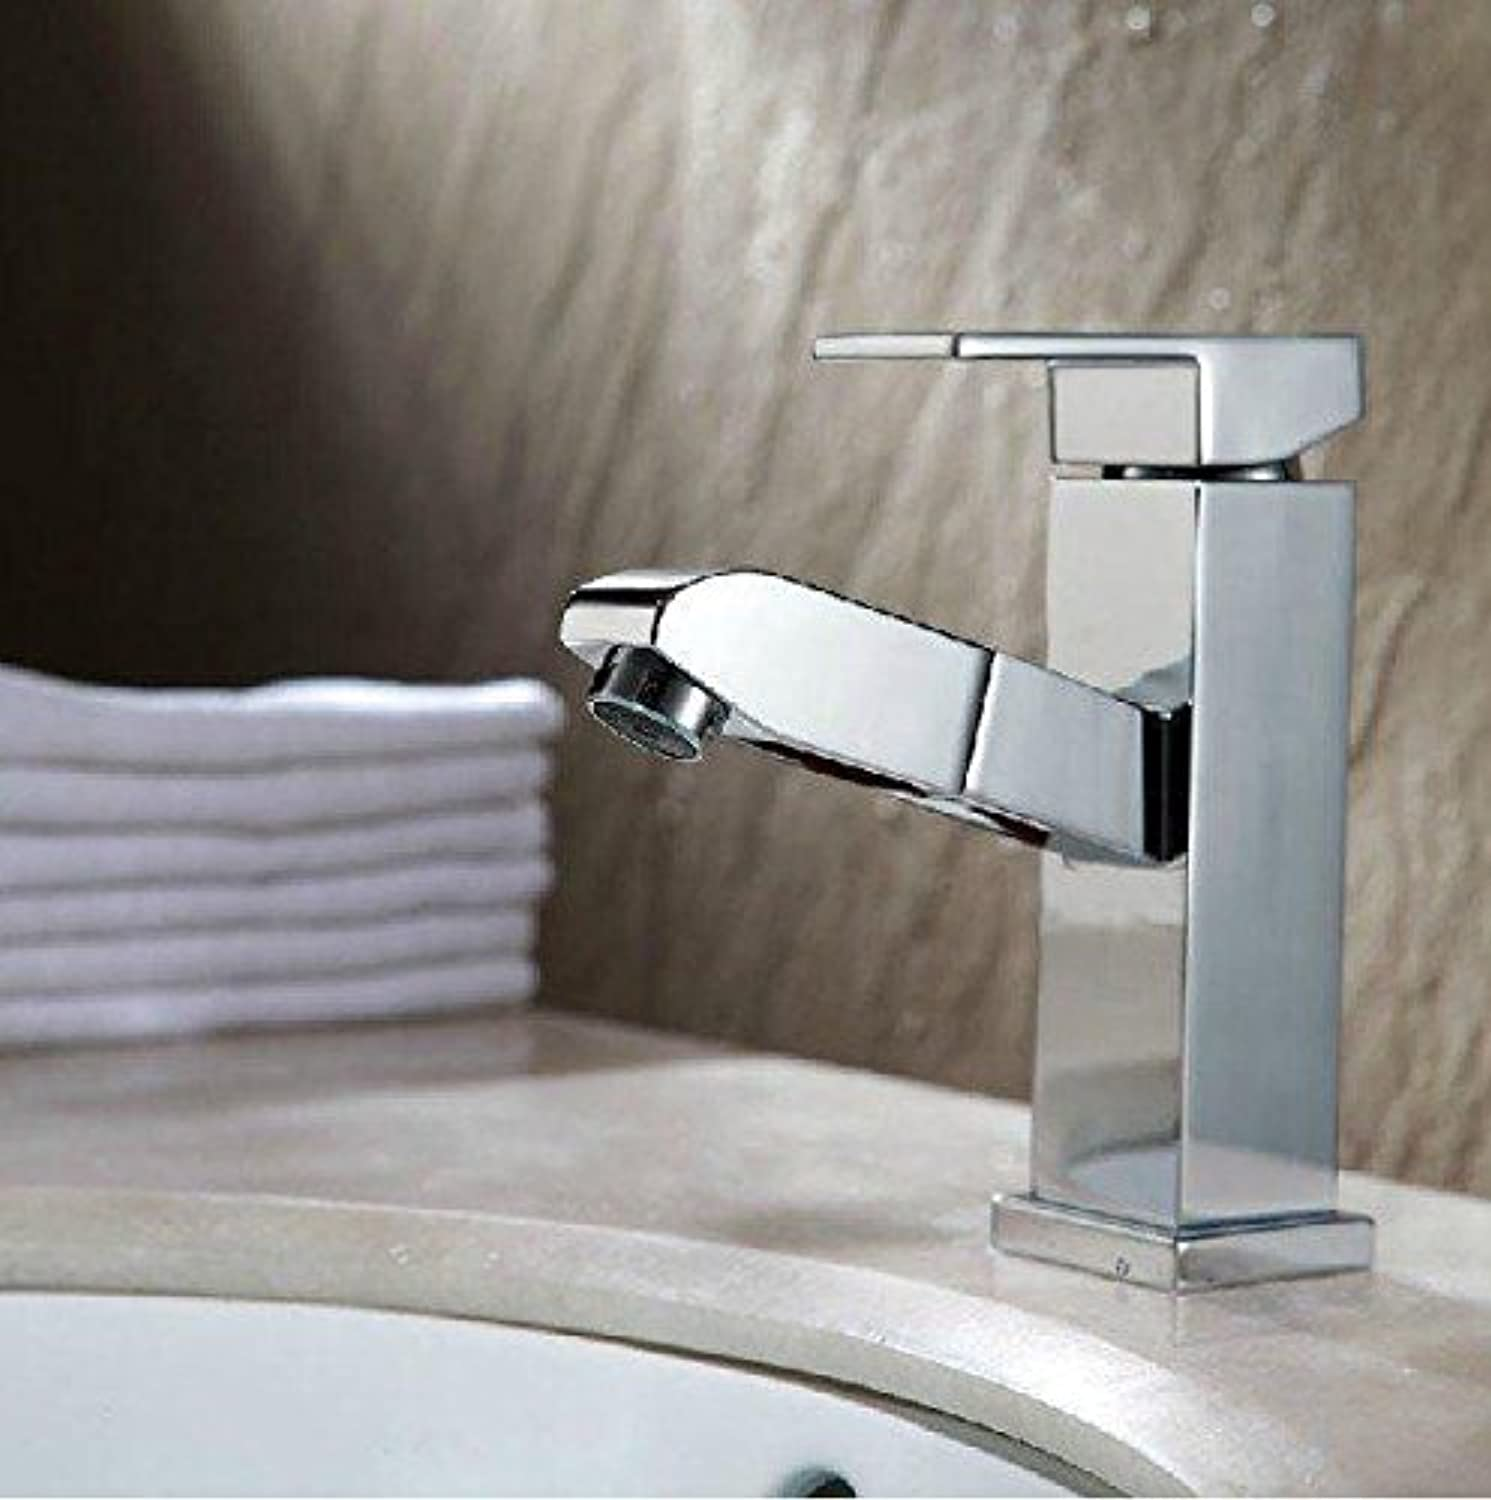 Hlluya Professional Sink Mixer Tap Kitchen Faucet All copper pull basin of hot and cold single handle single hole faucet, square pull-down +60cm Hose